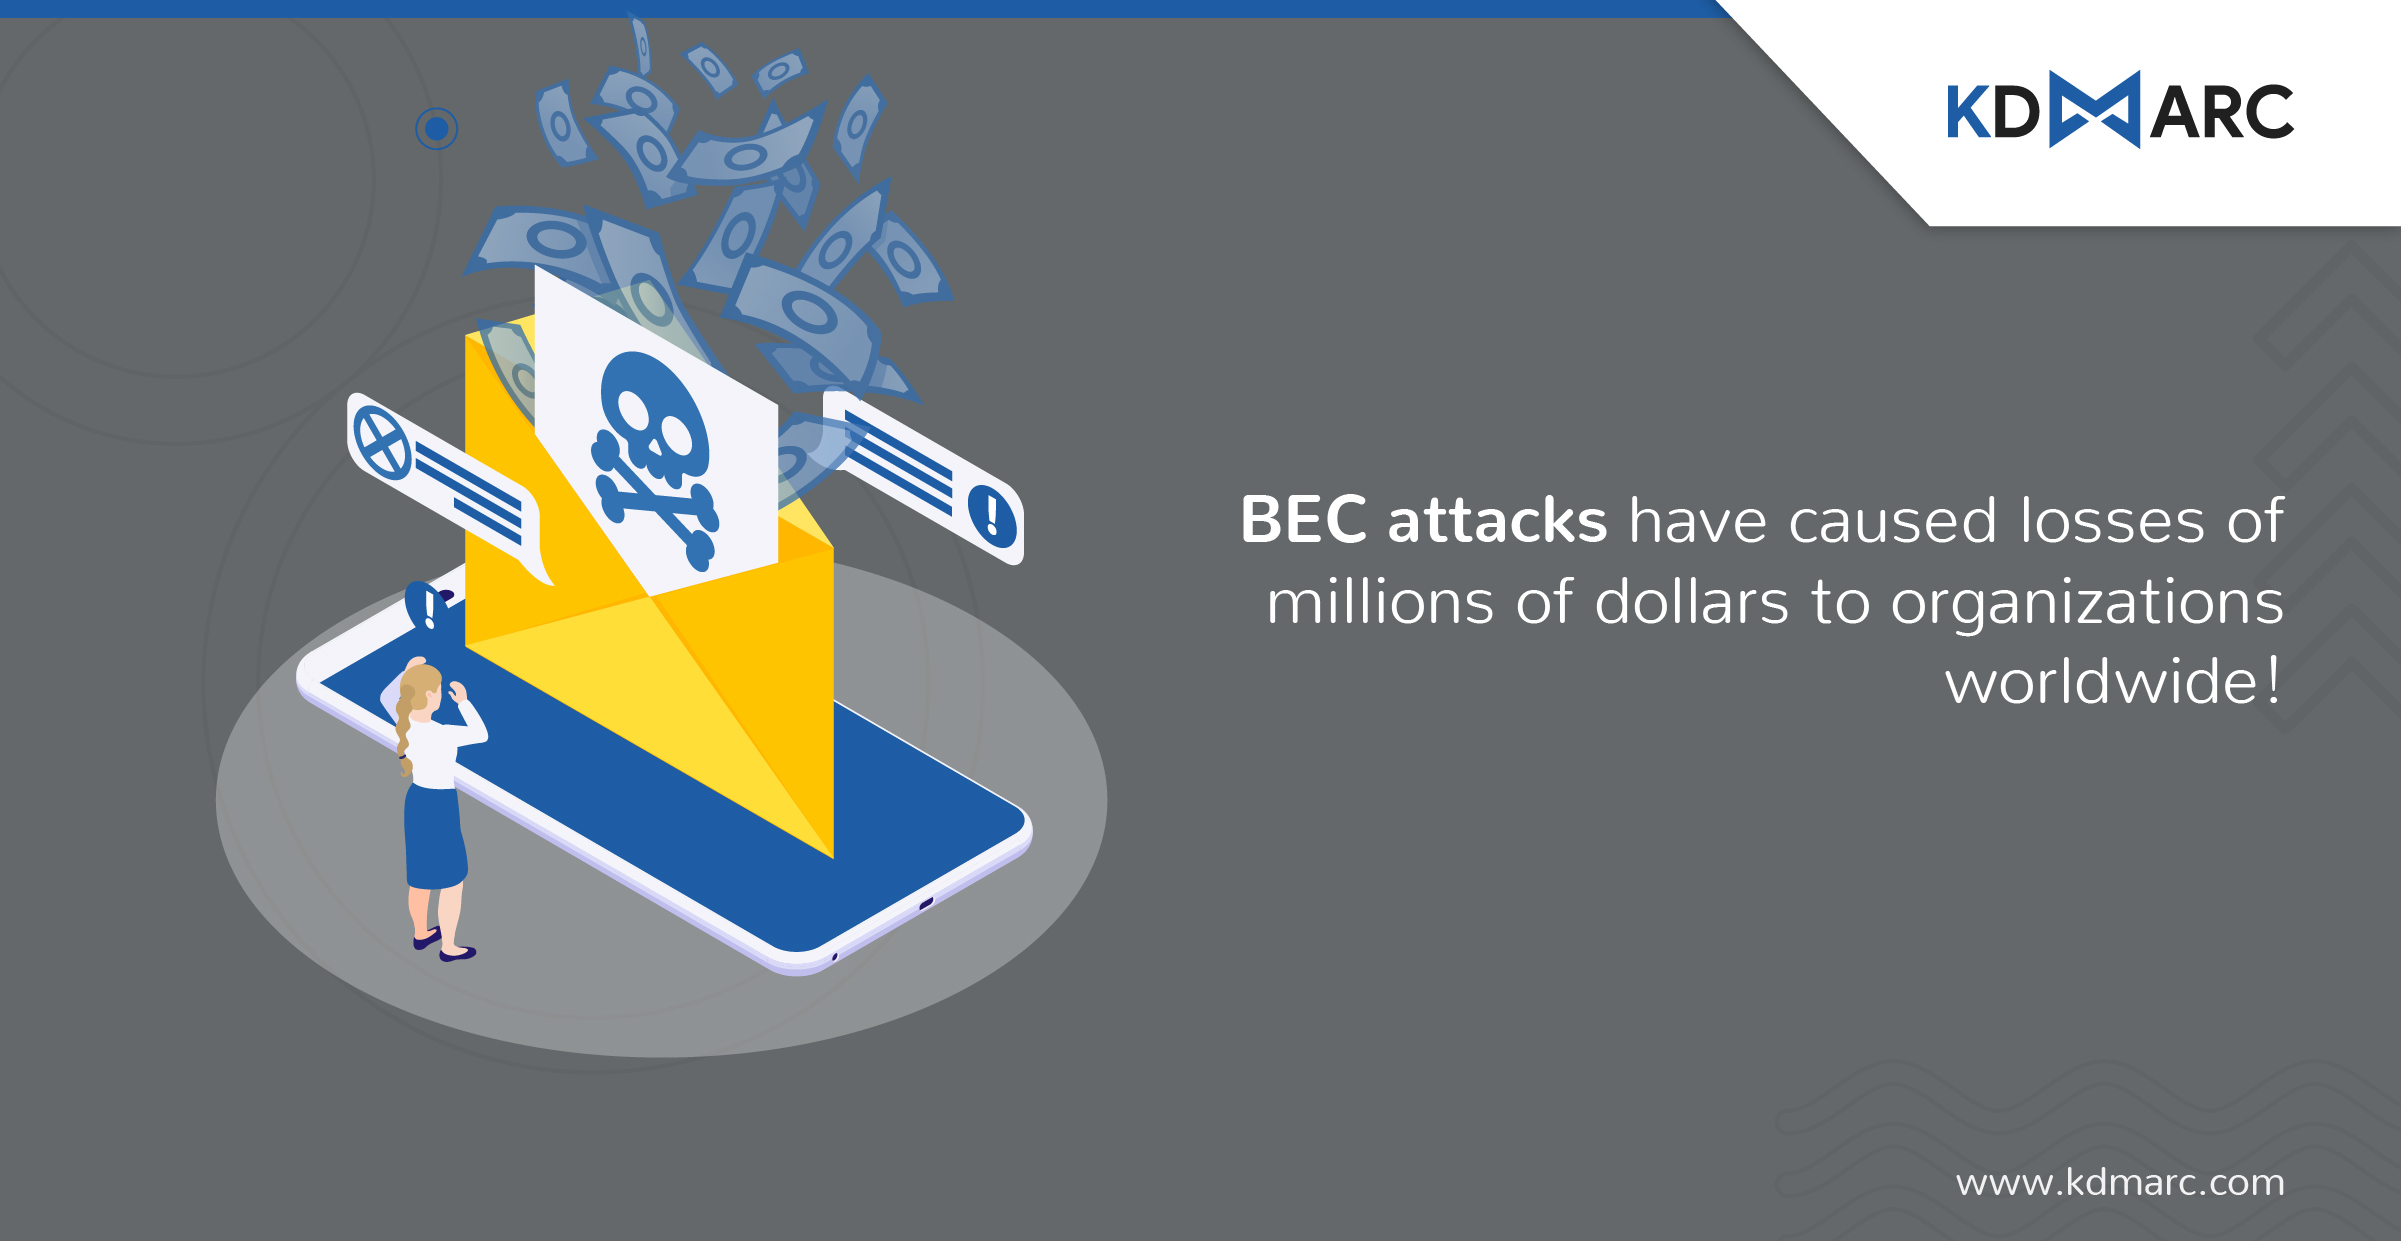 Real-life examples of BEC attacks